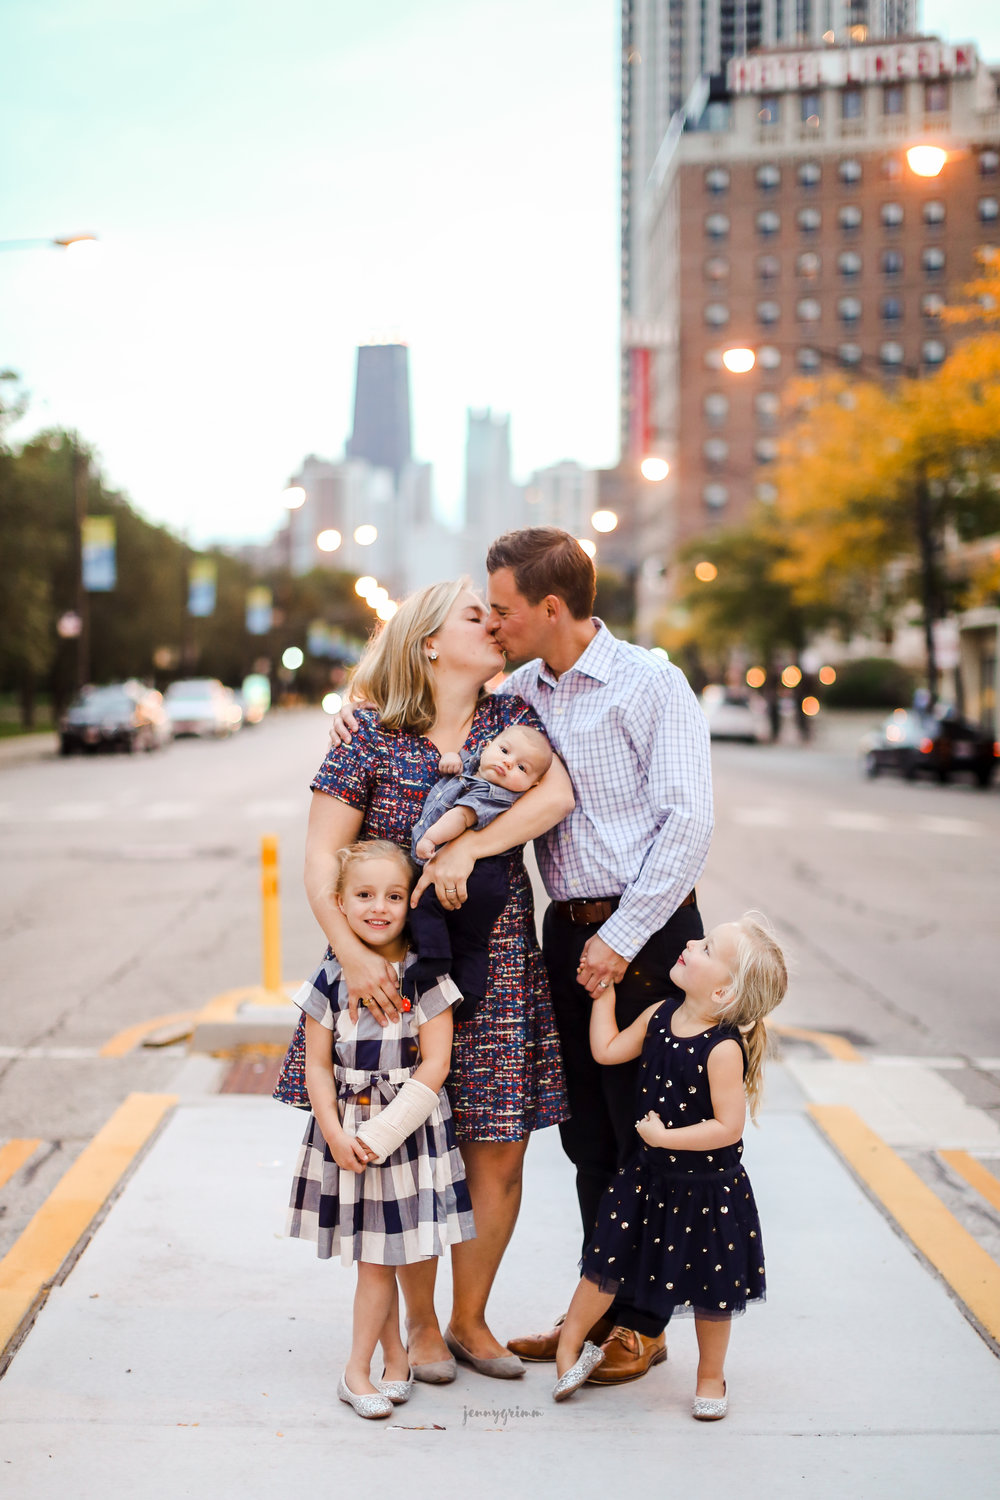 Your Family Session | What to Expect